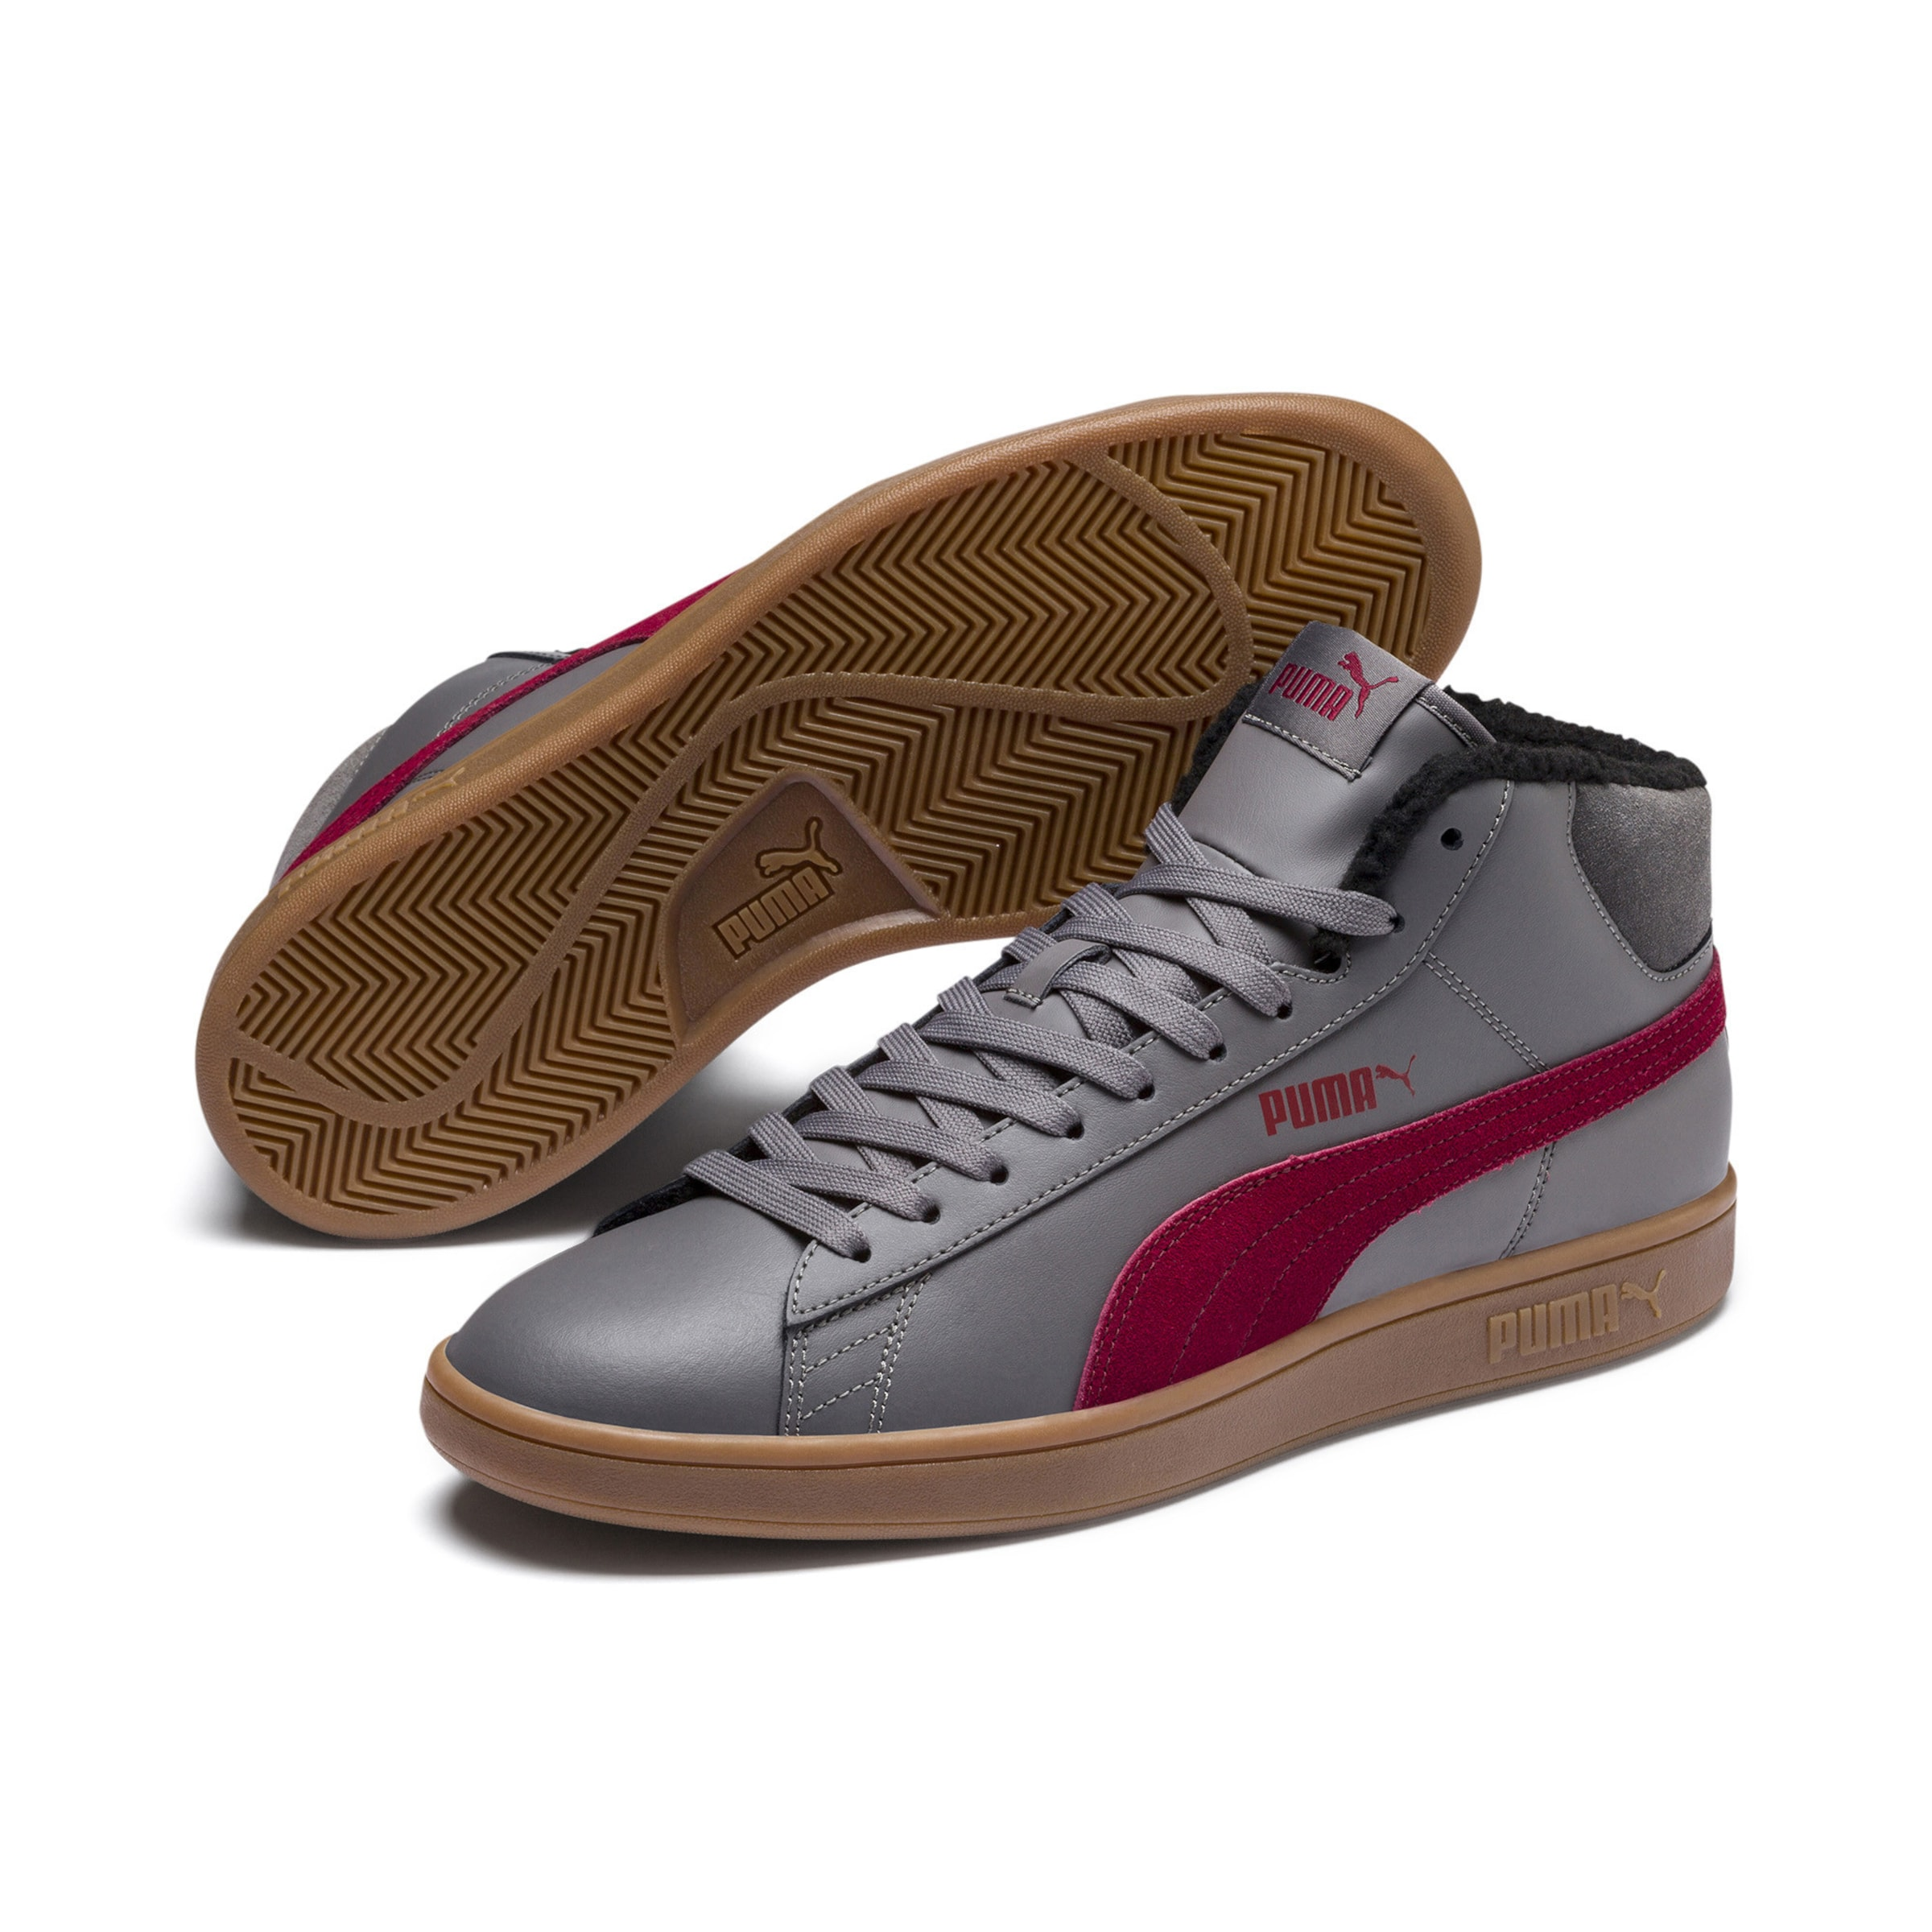 High Puma Mid' In SilbergrauBordeaux tops 'smash V2 WrBodxeC